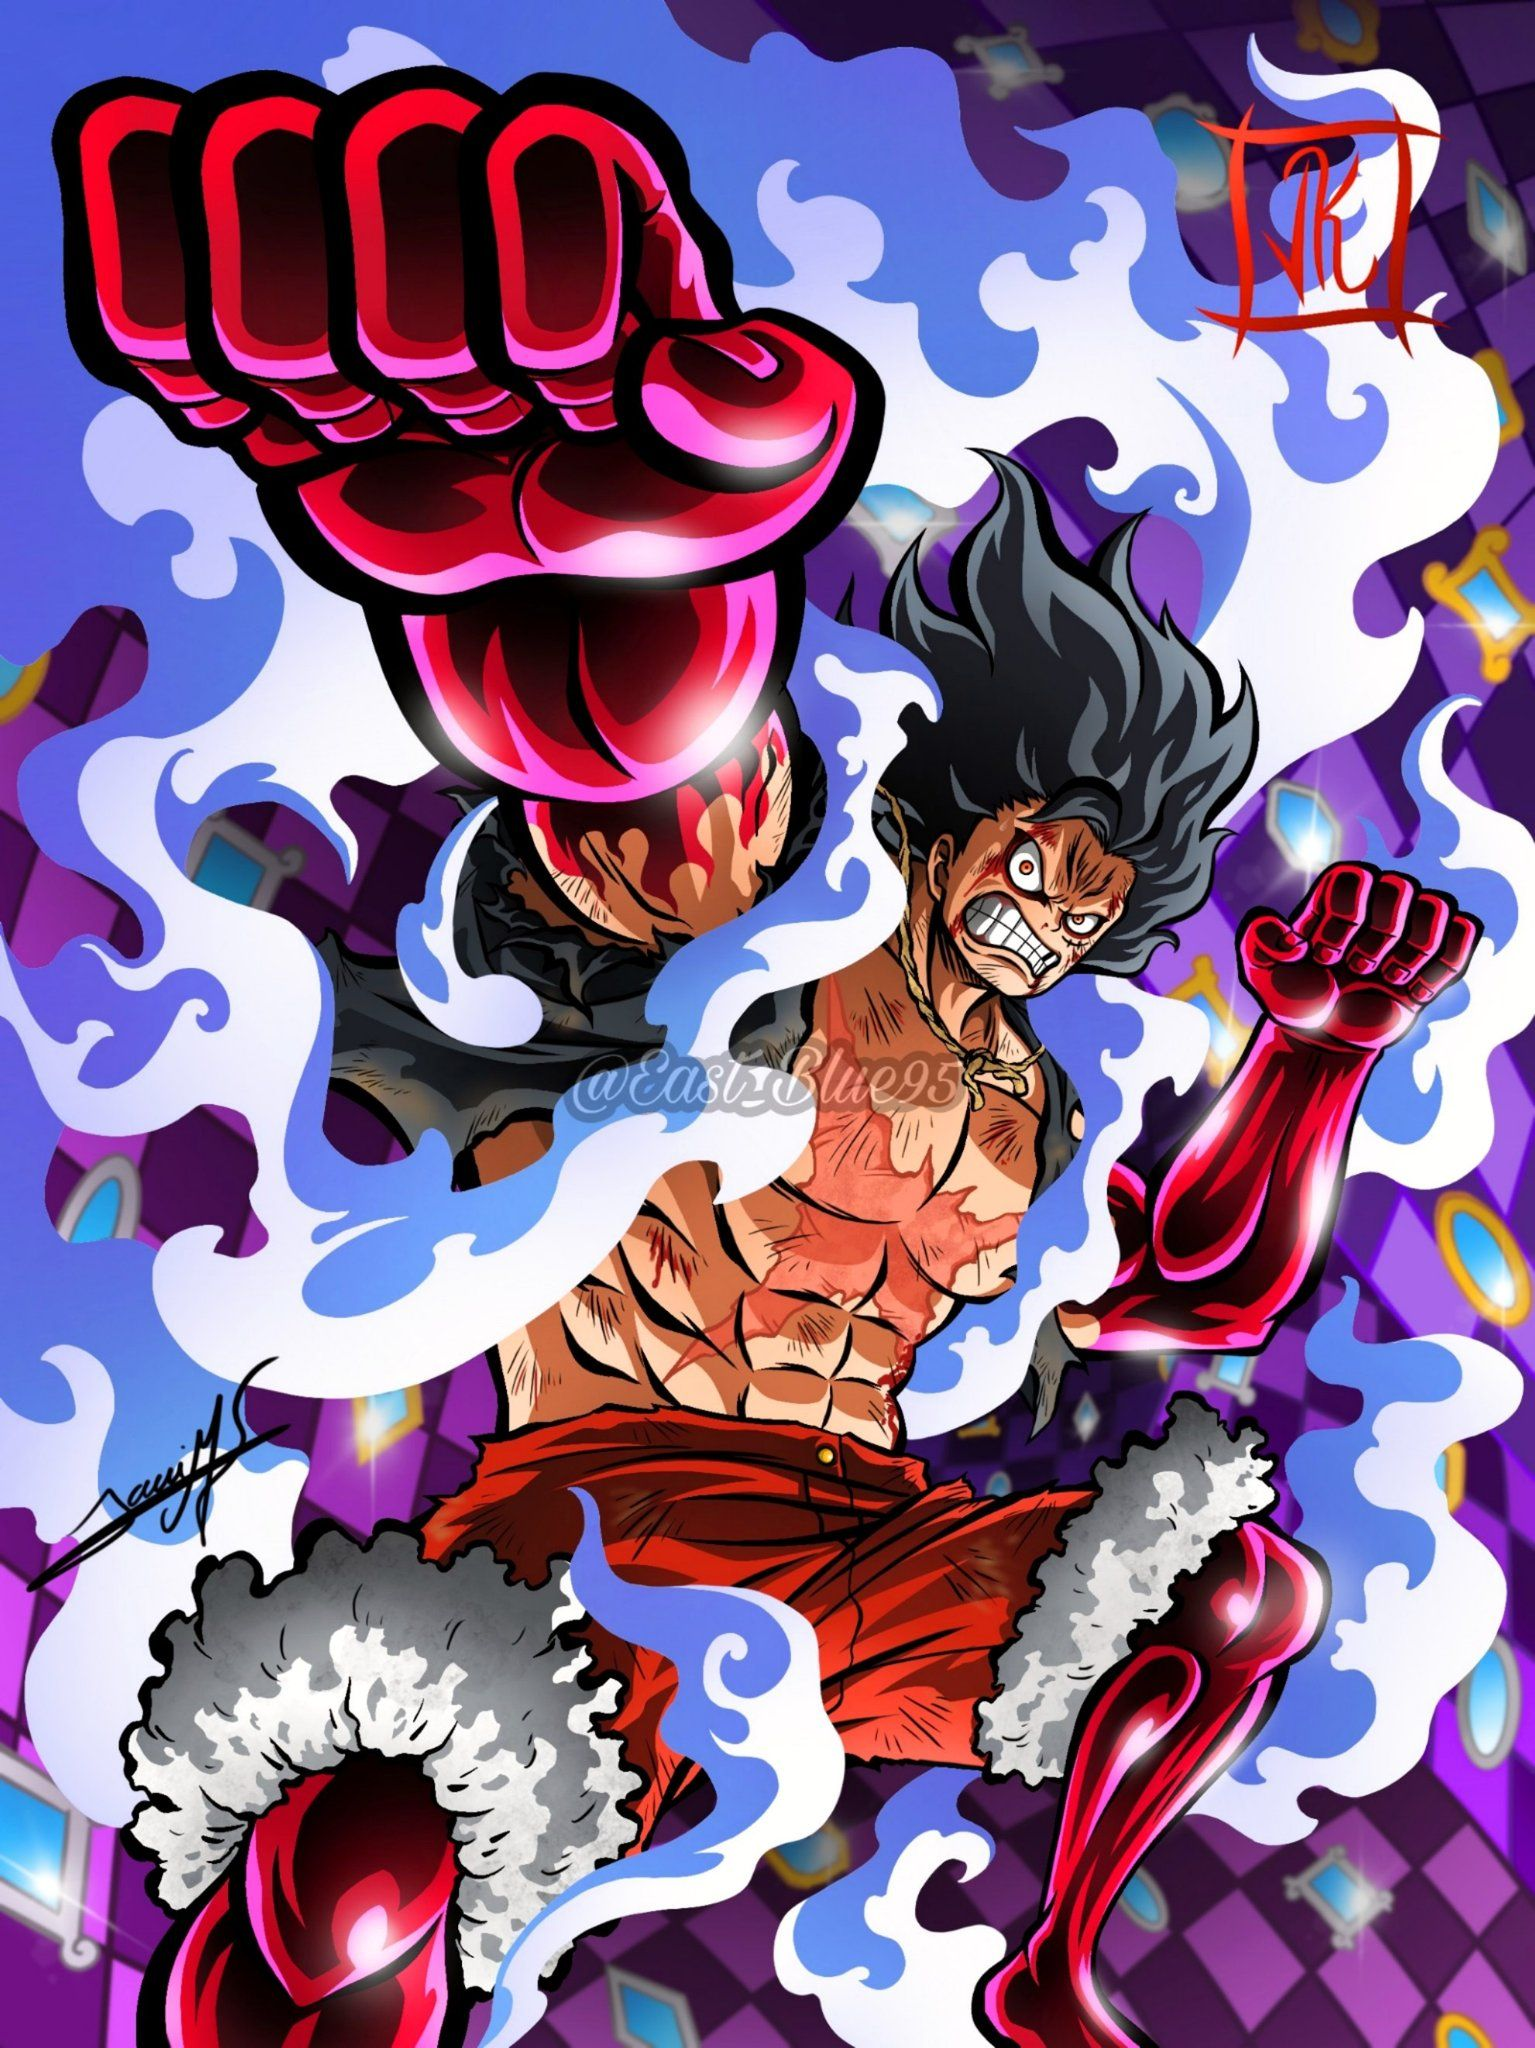 Luffy Snake Man Manga Anime One Piece One Piece Drawing One Piece Wallpaper Iphone